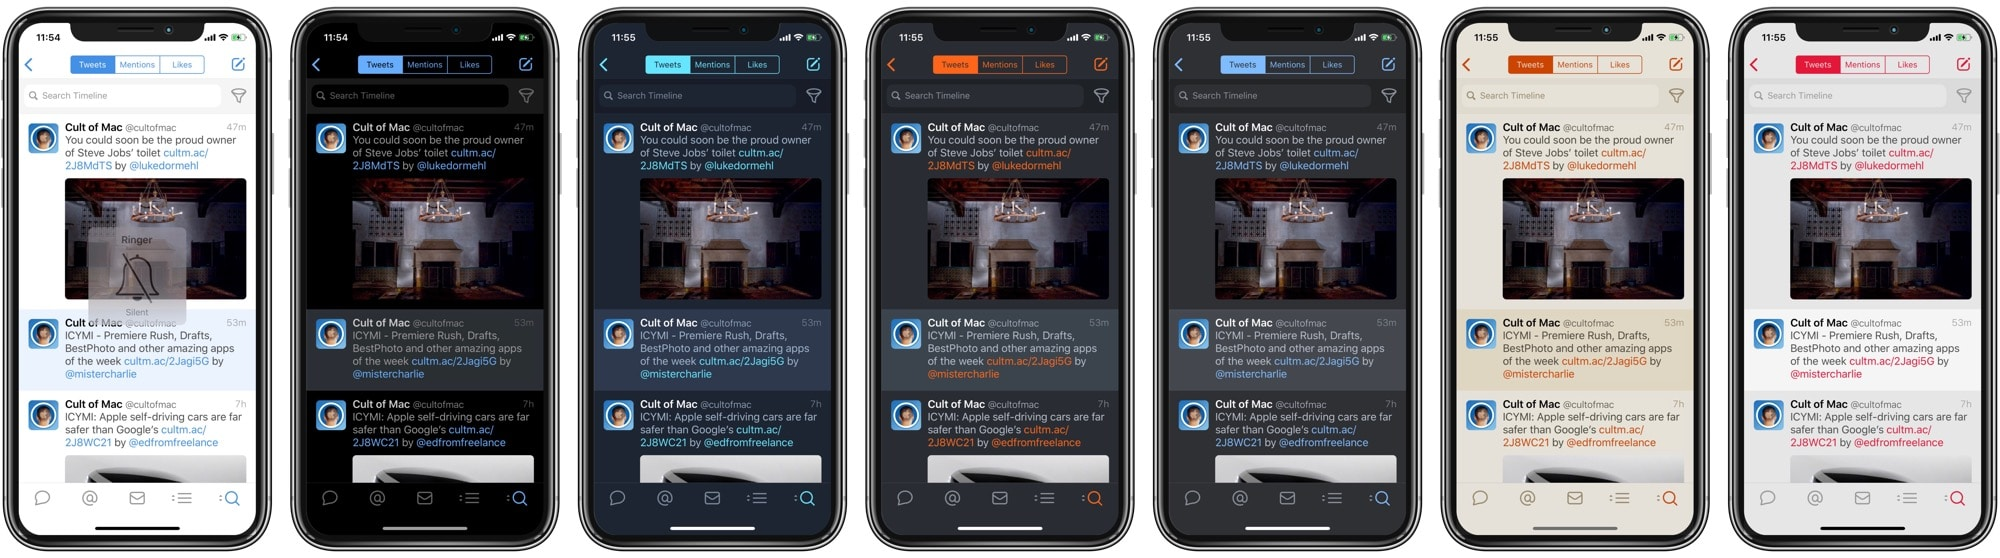 Tweetbot now has seven themes, if you know how to find them.